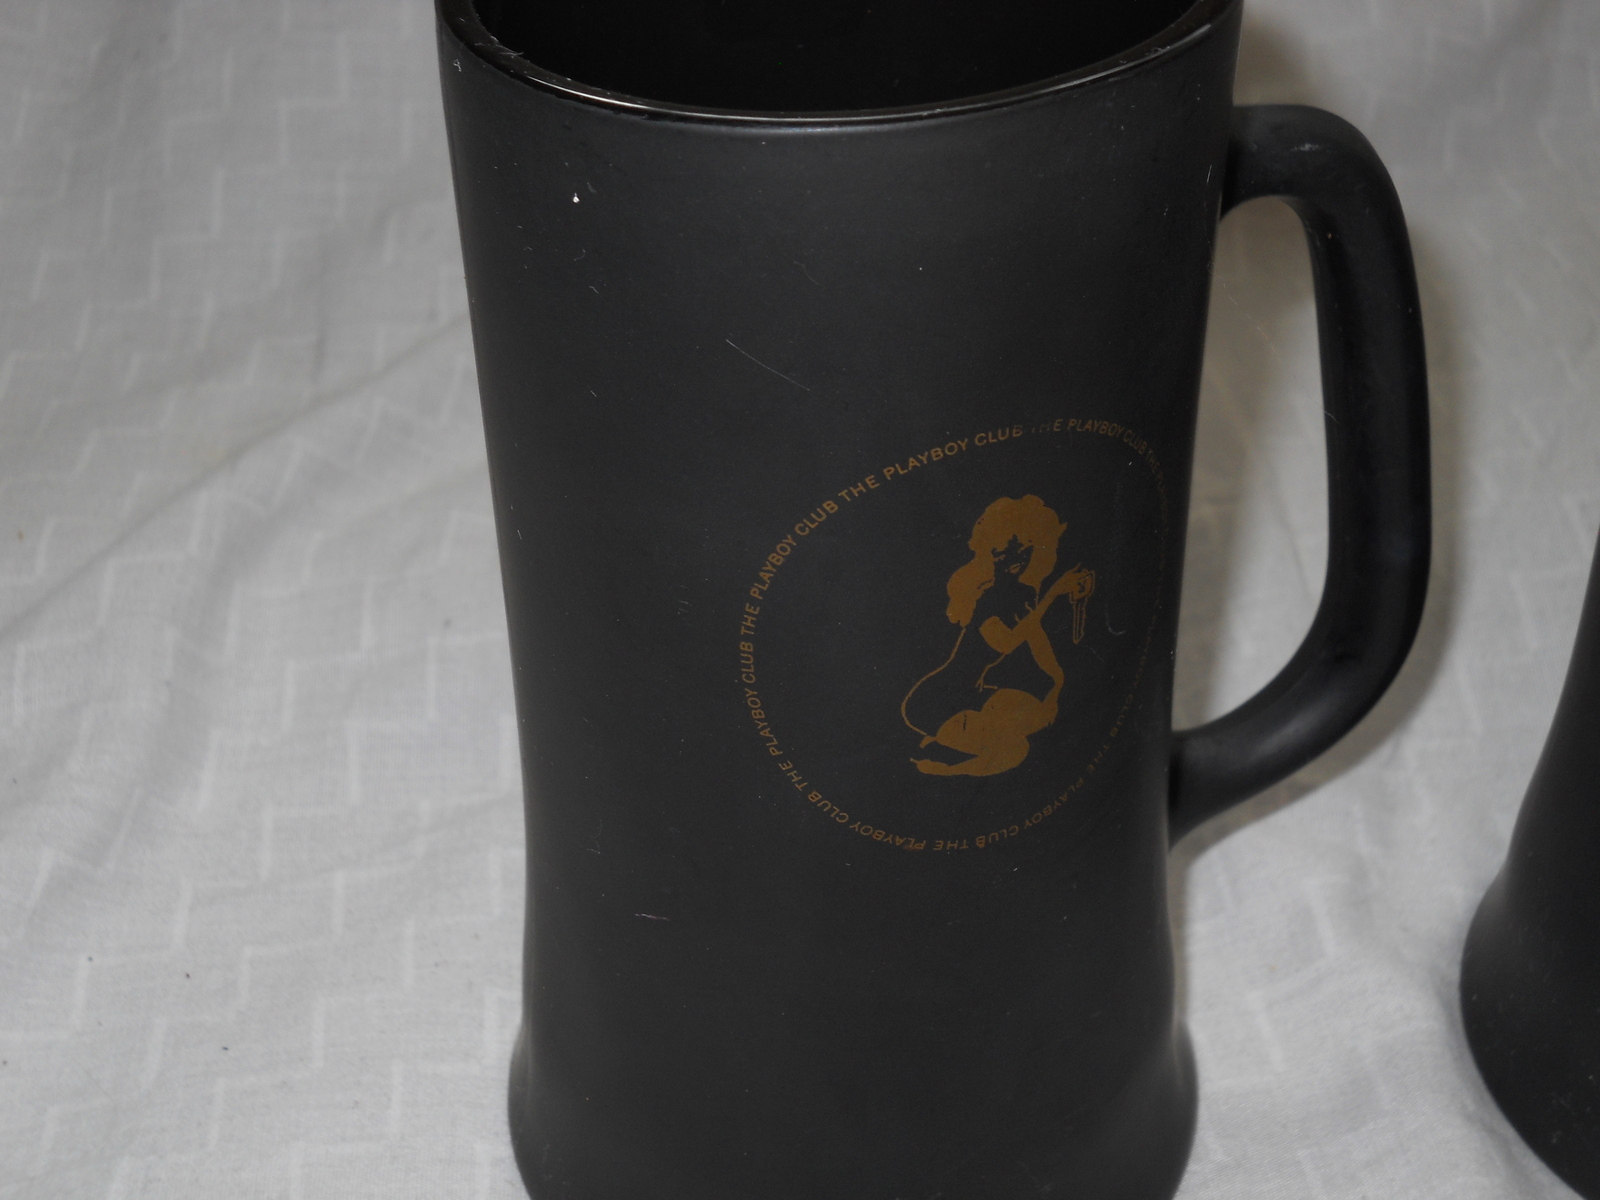 TWO PLAYBOY CLUB BLACK & GOLD FROSTY GLASS COFFEE MUGS, BEER STEIN CUP VTG 60's image 4